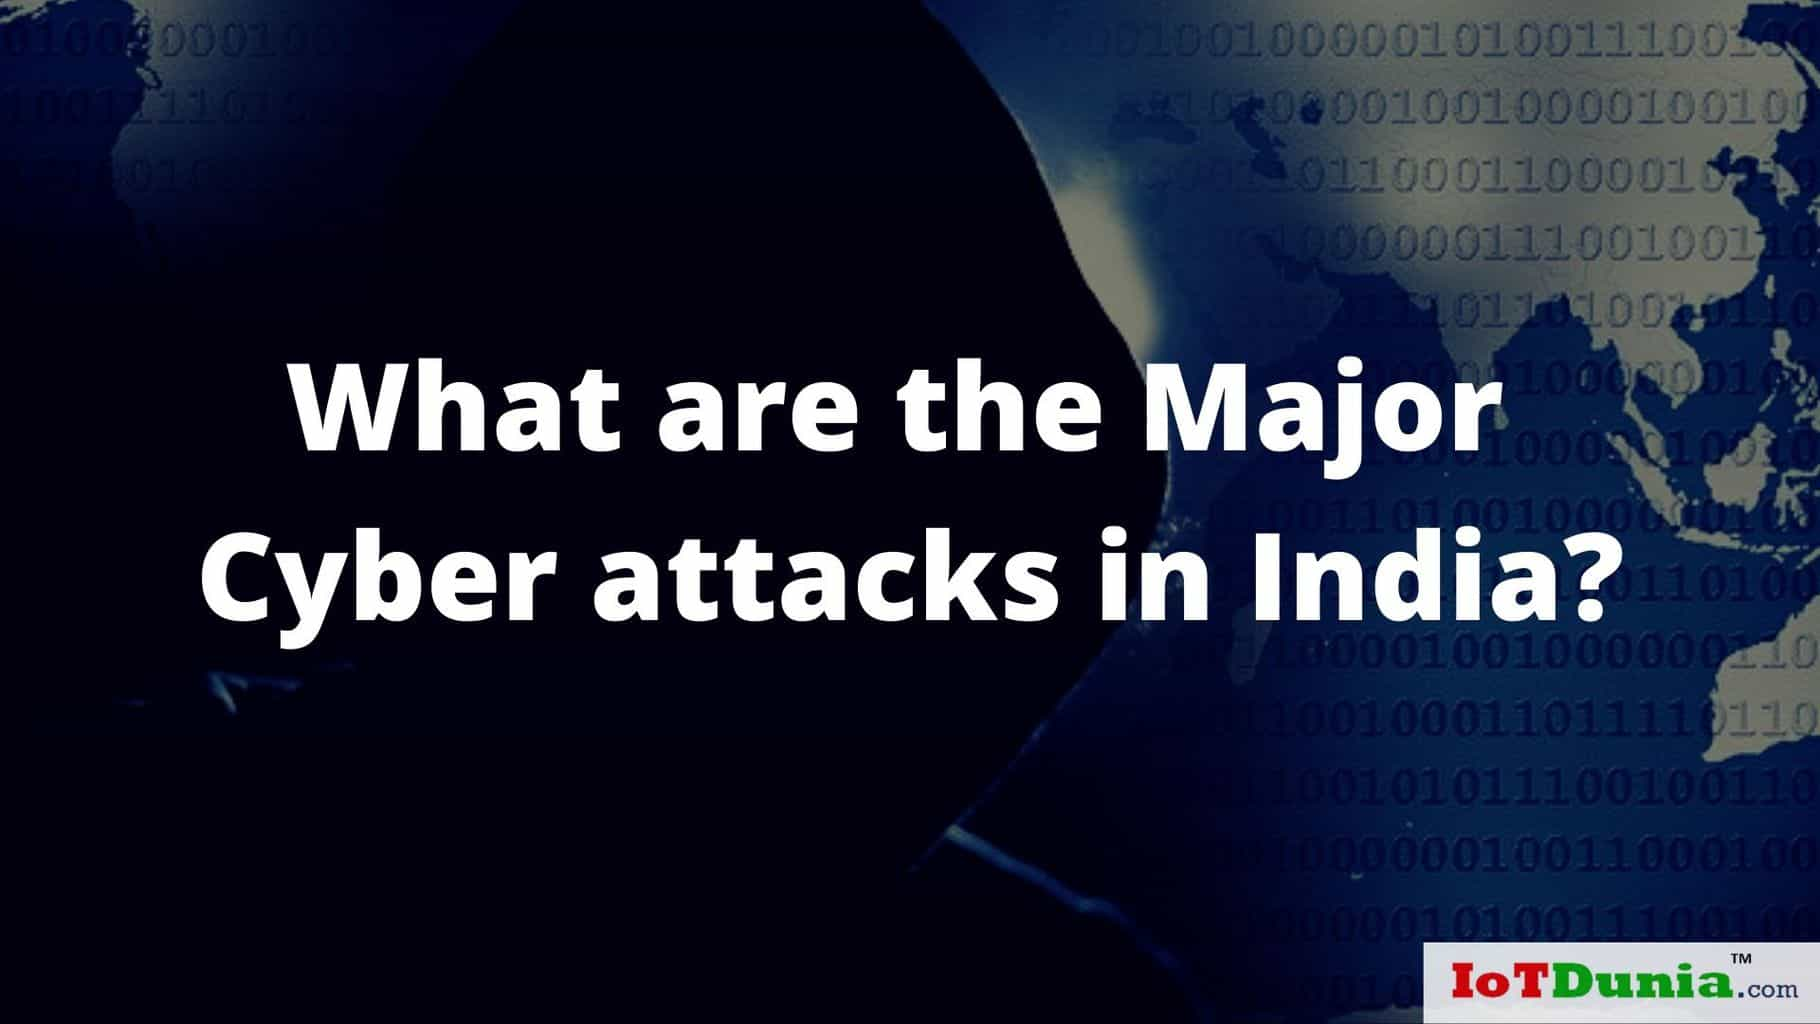 What are the Major Cyber attacks in India?